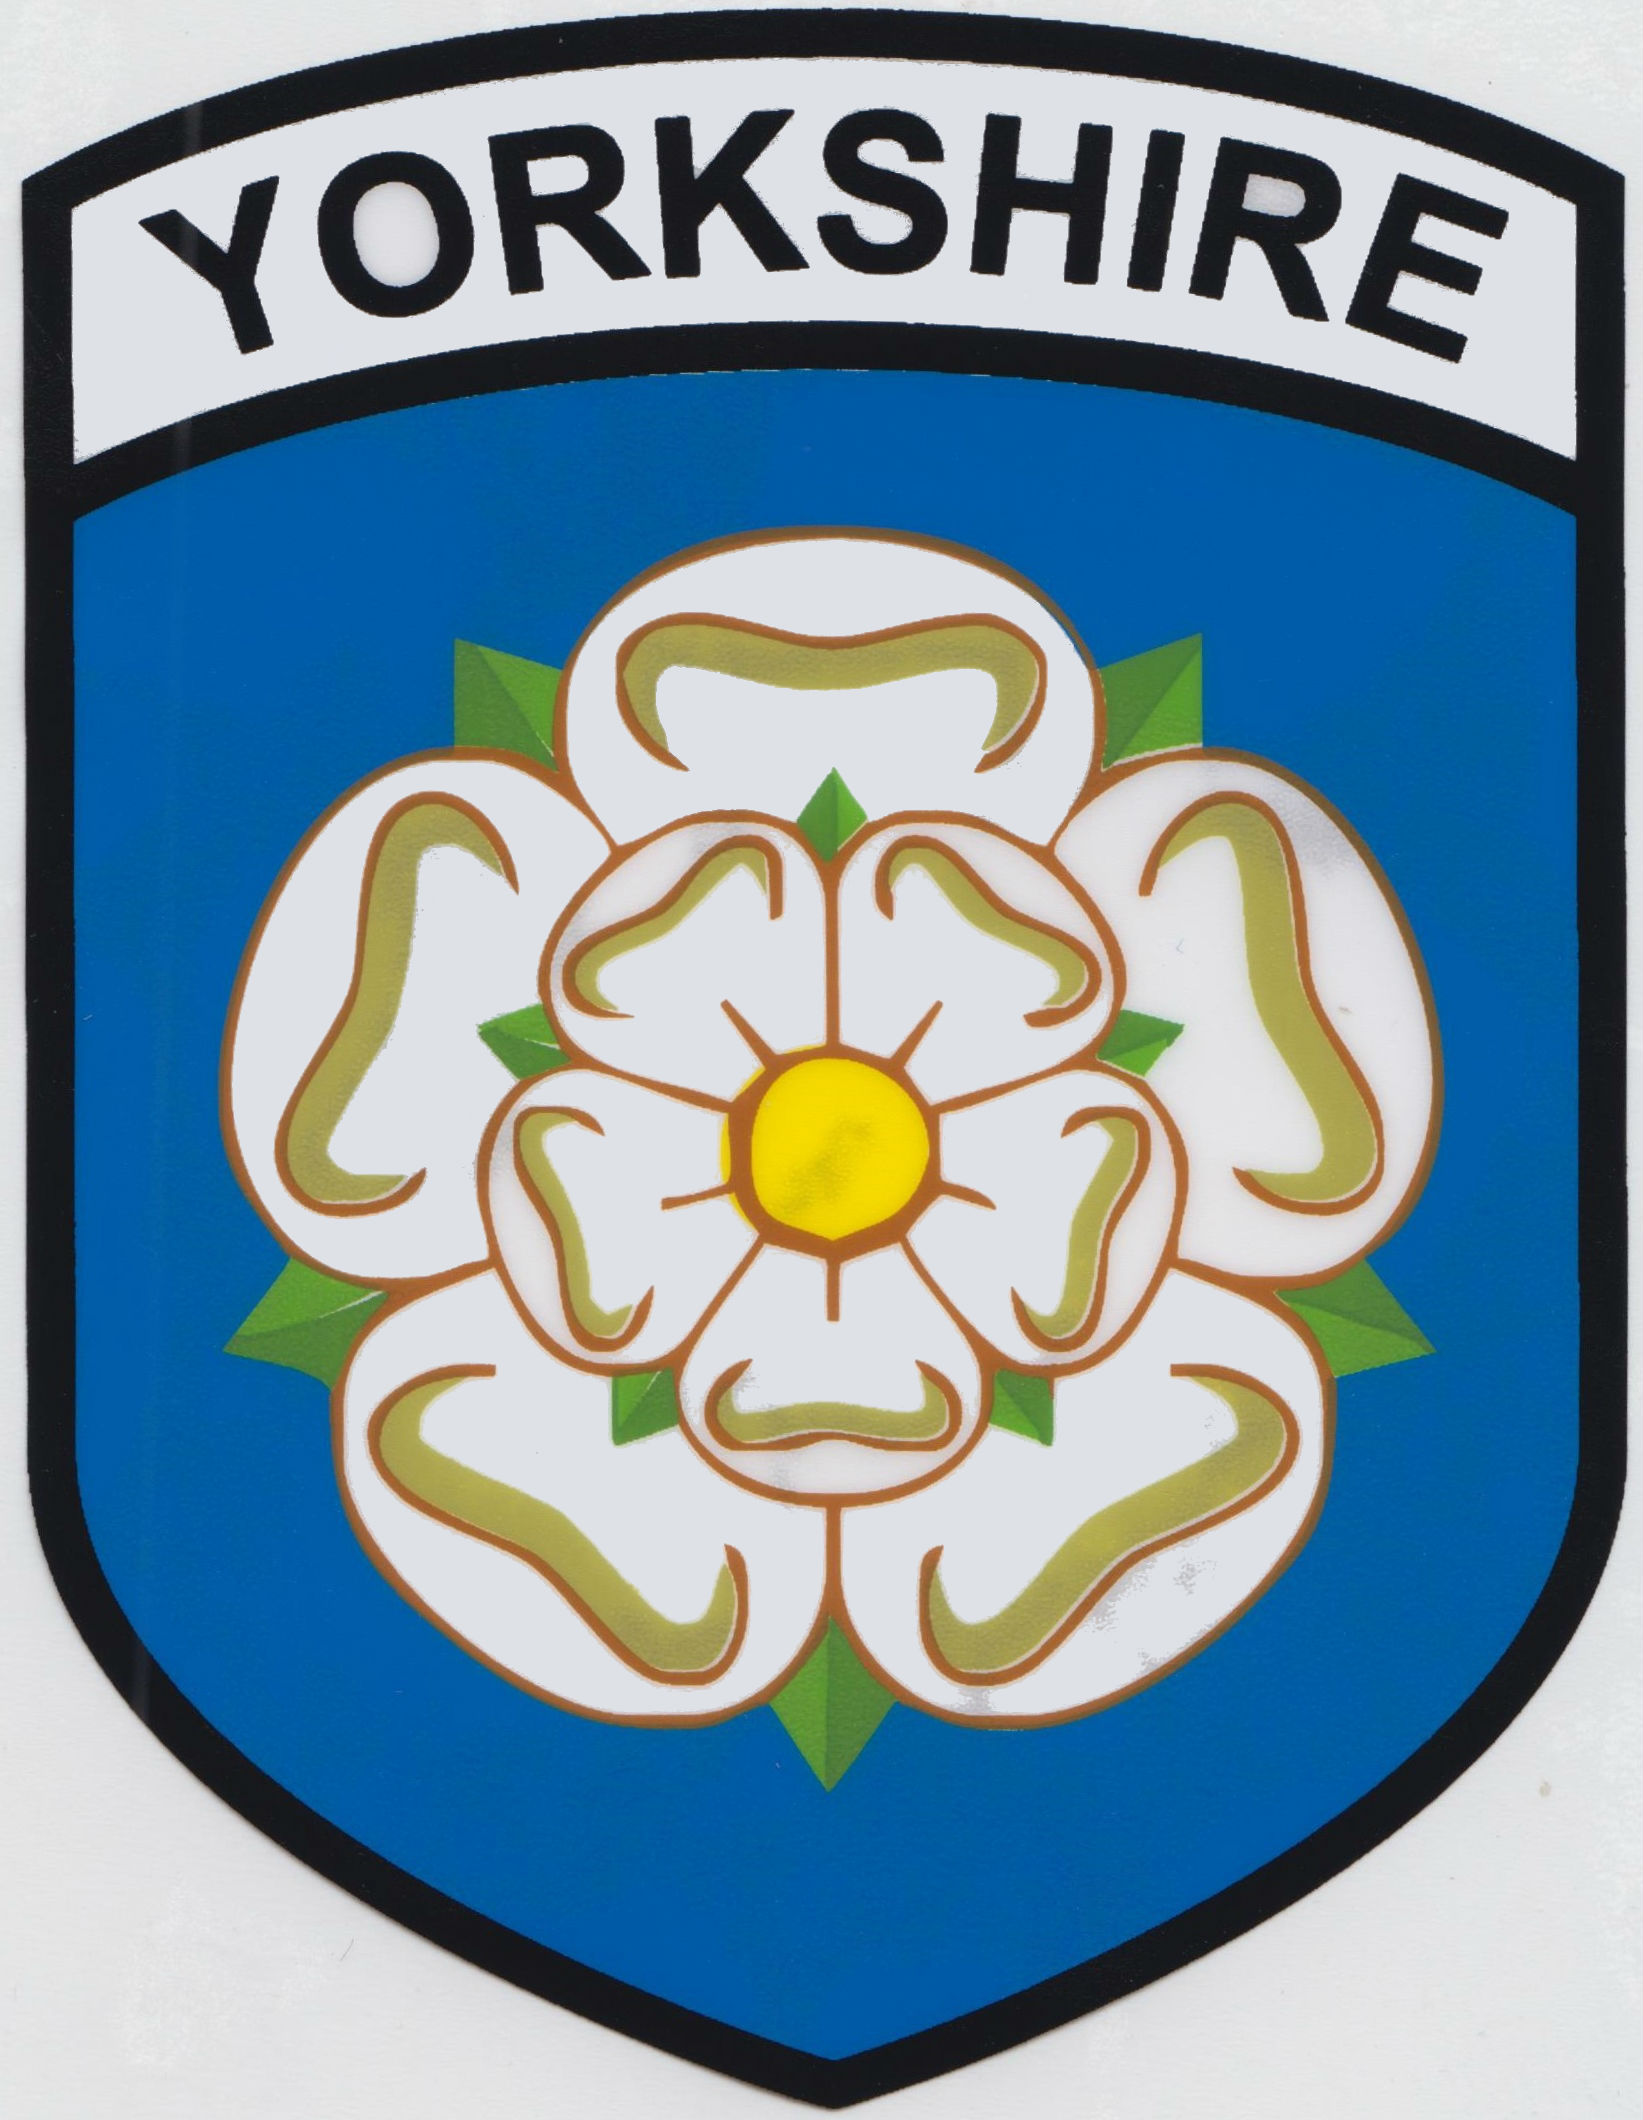 Vinyl Sticker Wall Yorkshire Rose County Flag Car Sticker Shield Self Cling